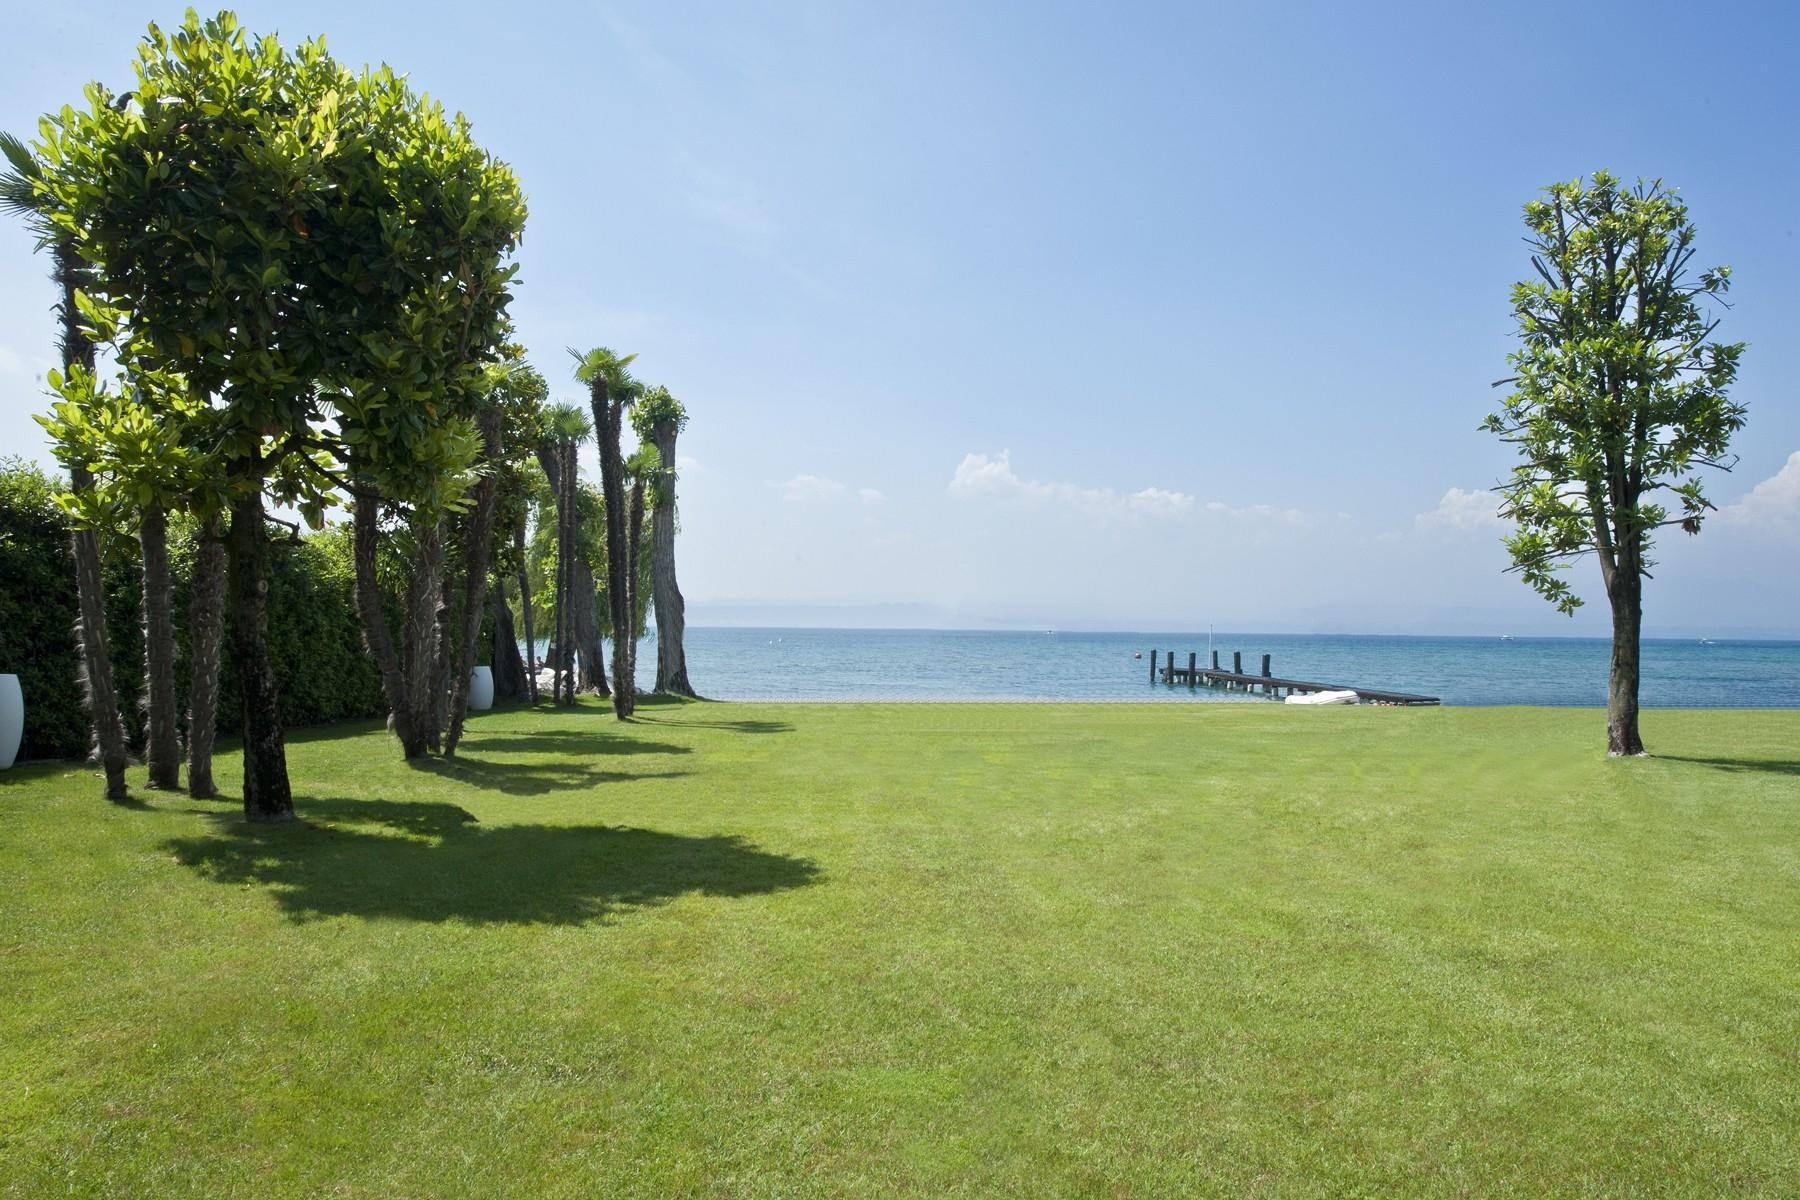 One of a kind Pieds dans l'eau villa with beach and dock in Sirmione - 14